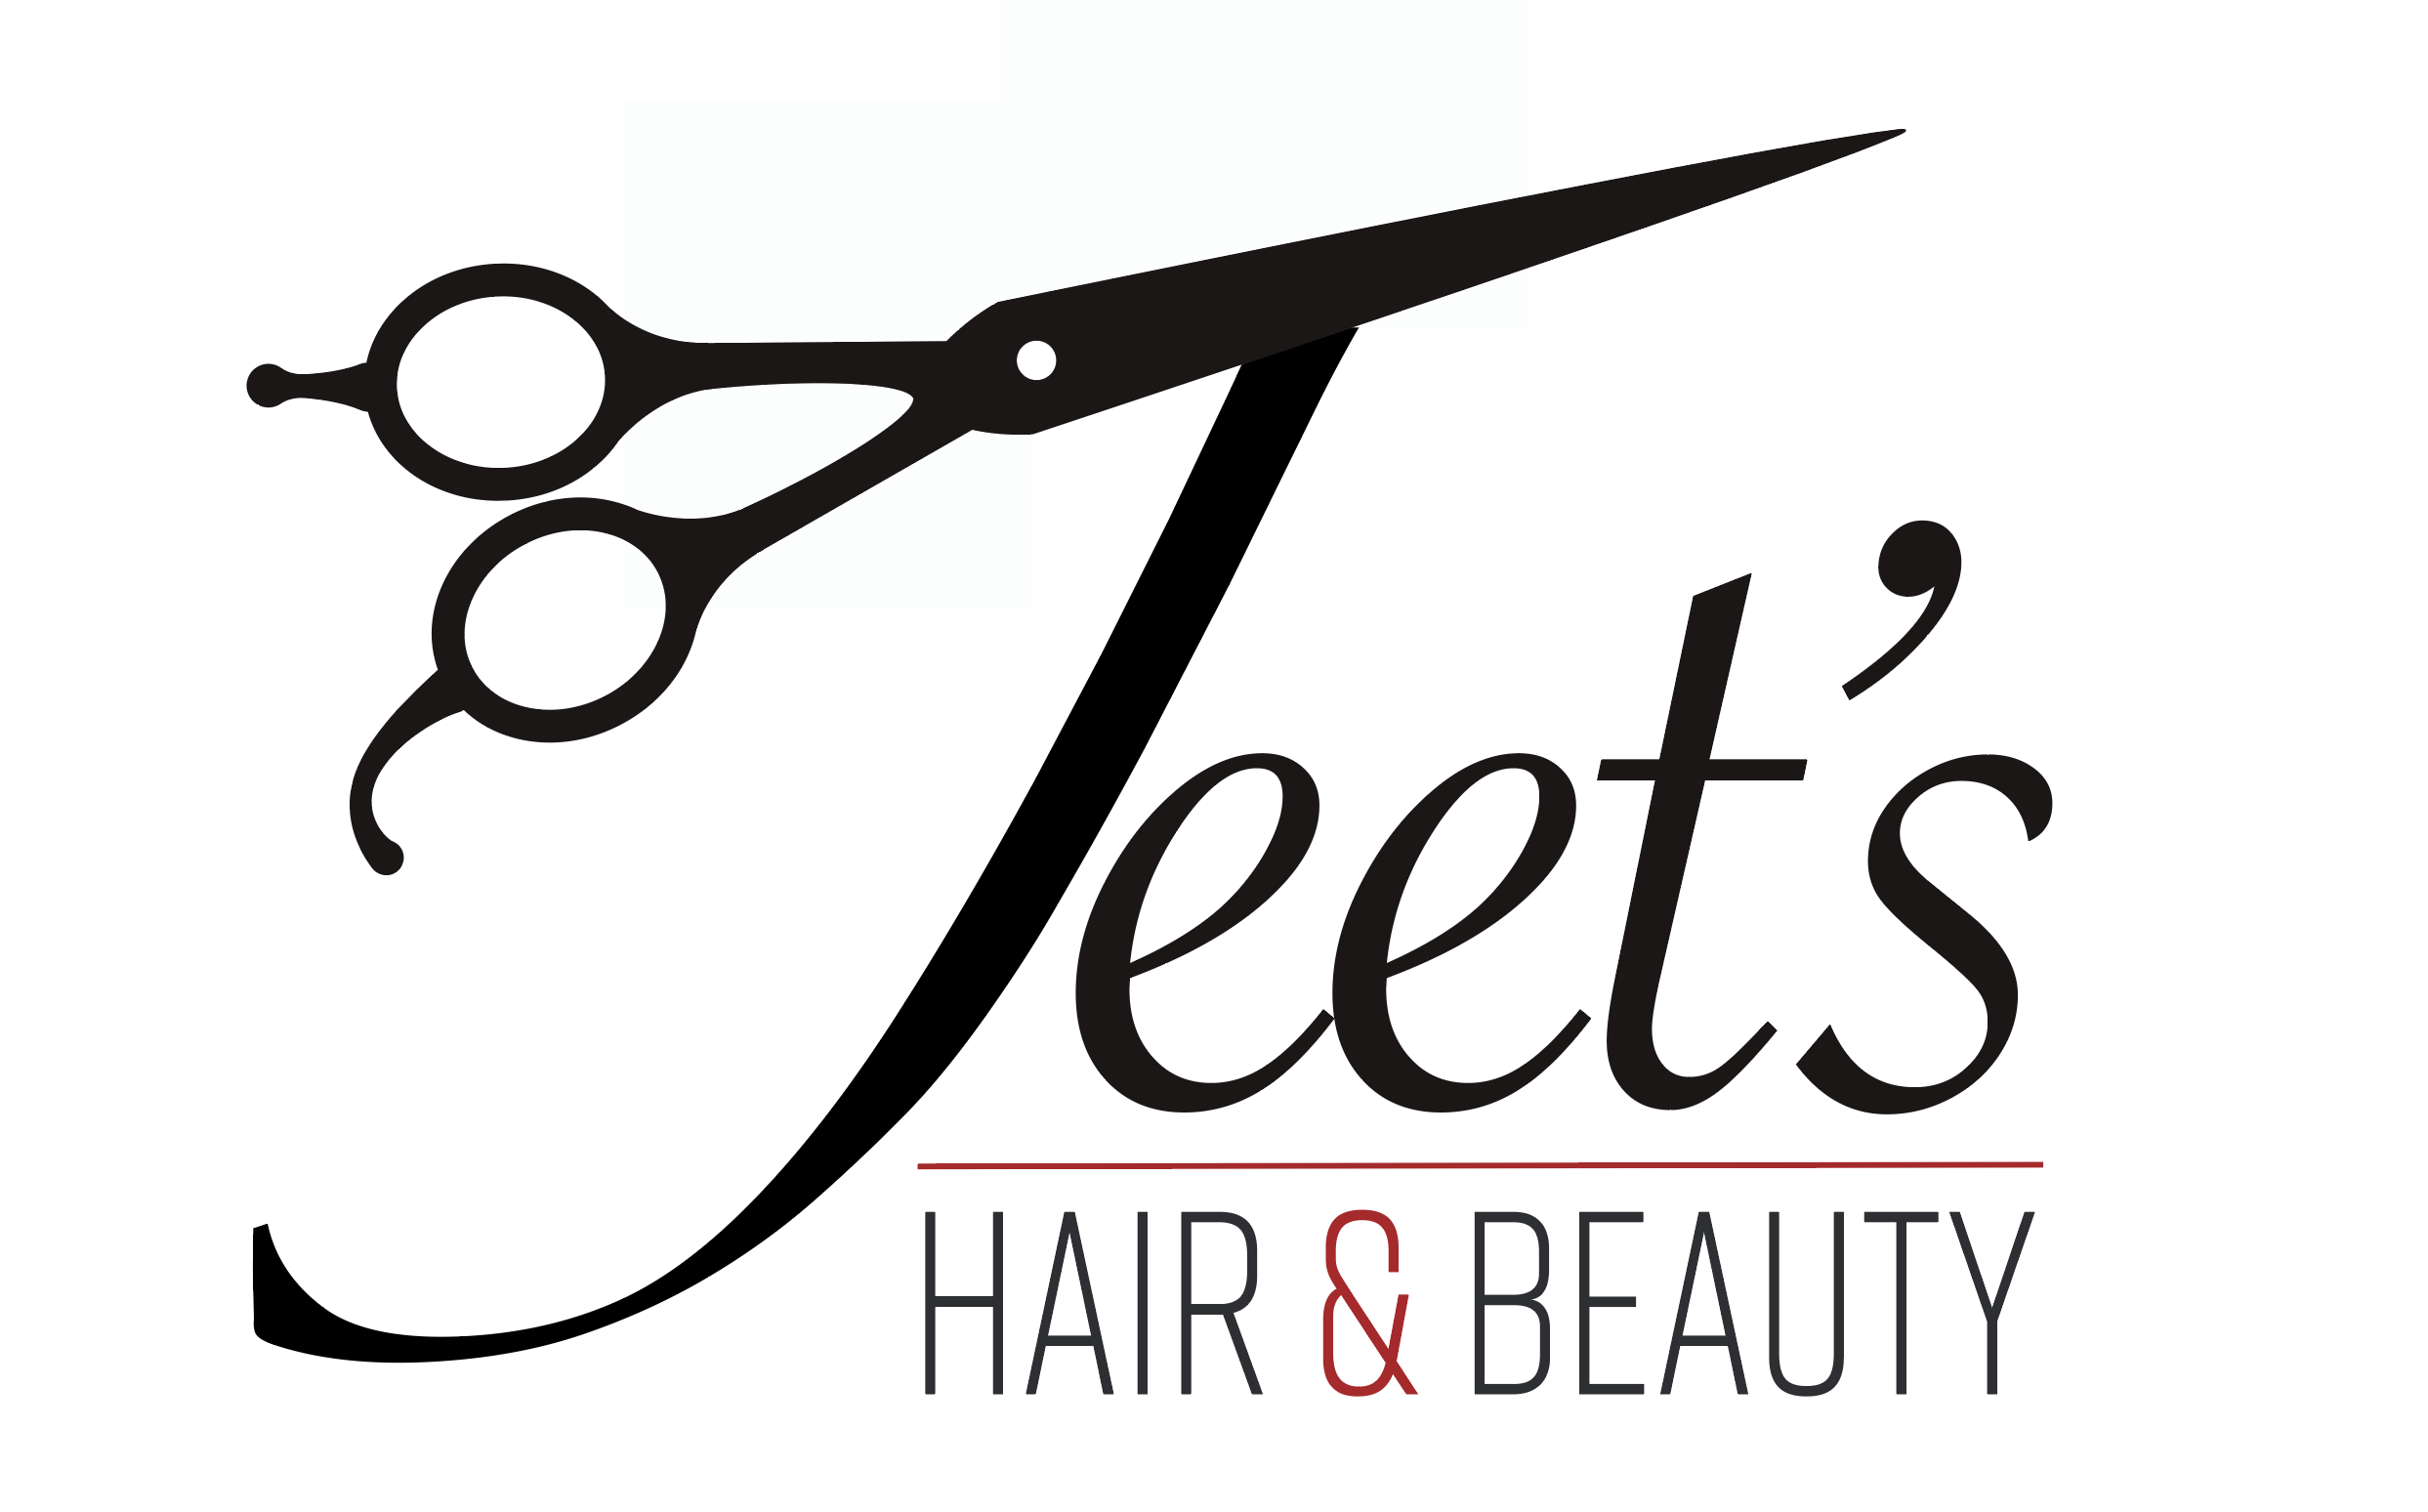 Jeet's Hair & Beauty